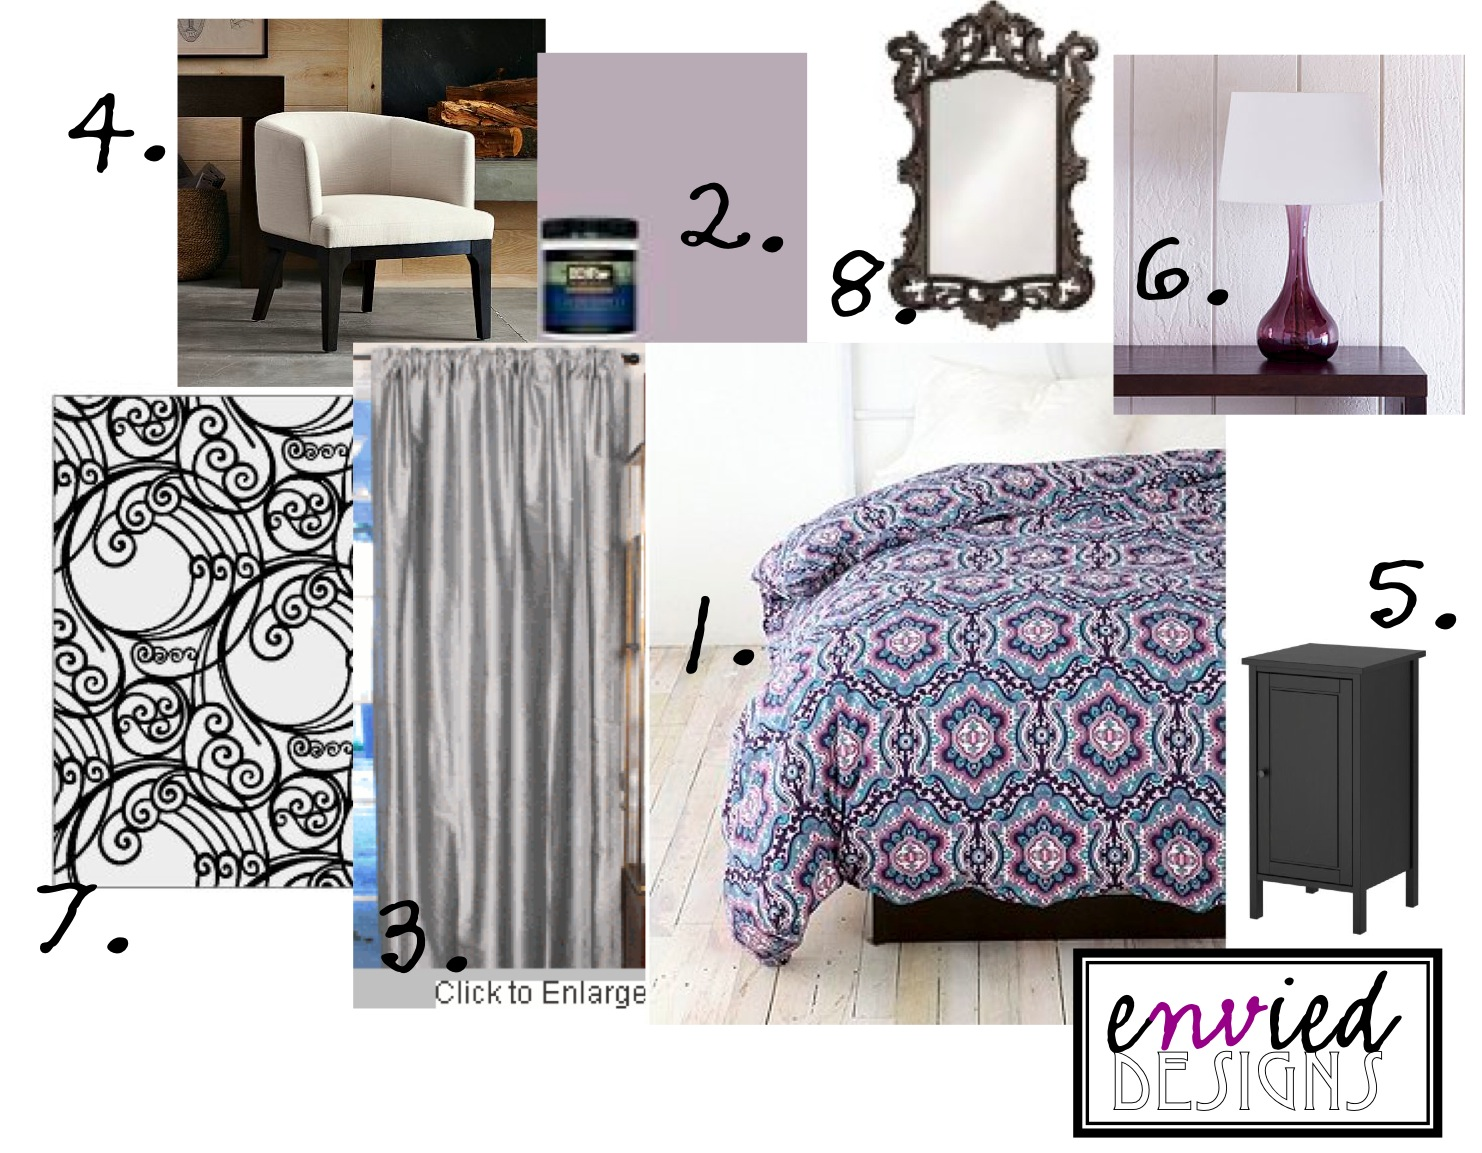 Envied Designs January 2011